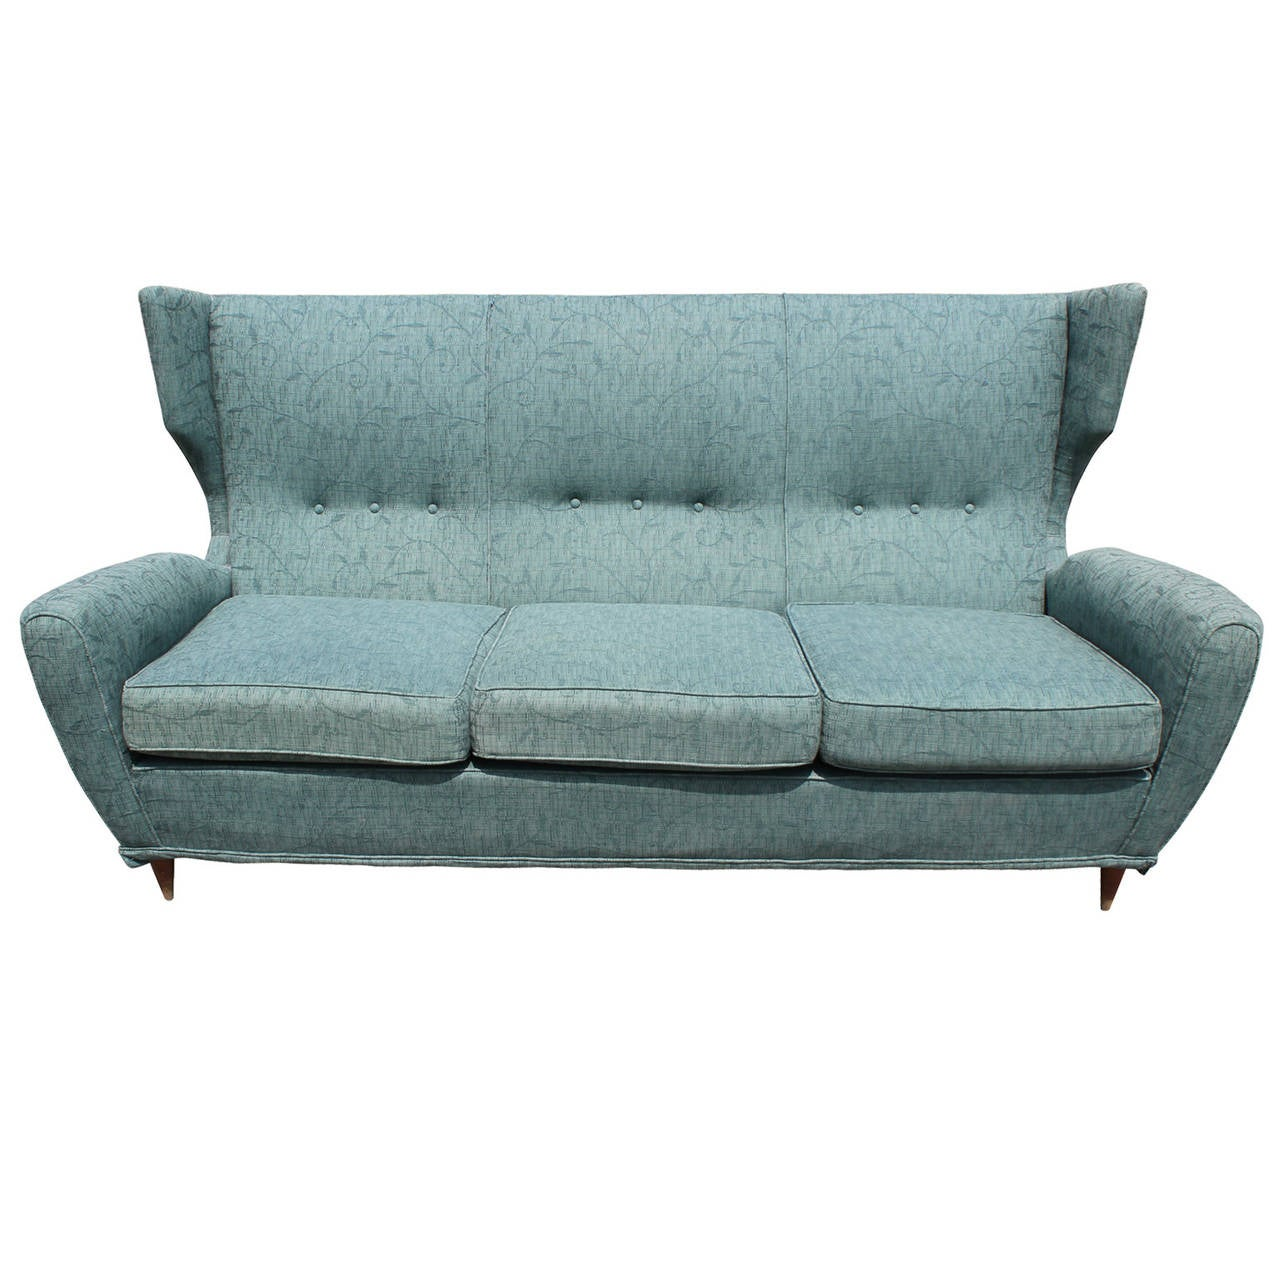 Sculptural Mid Century Modern Italian Wingback Sofa With Tapered Legs For Sale At 1stdibs